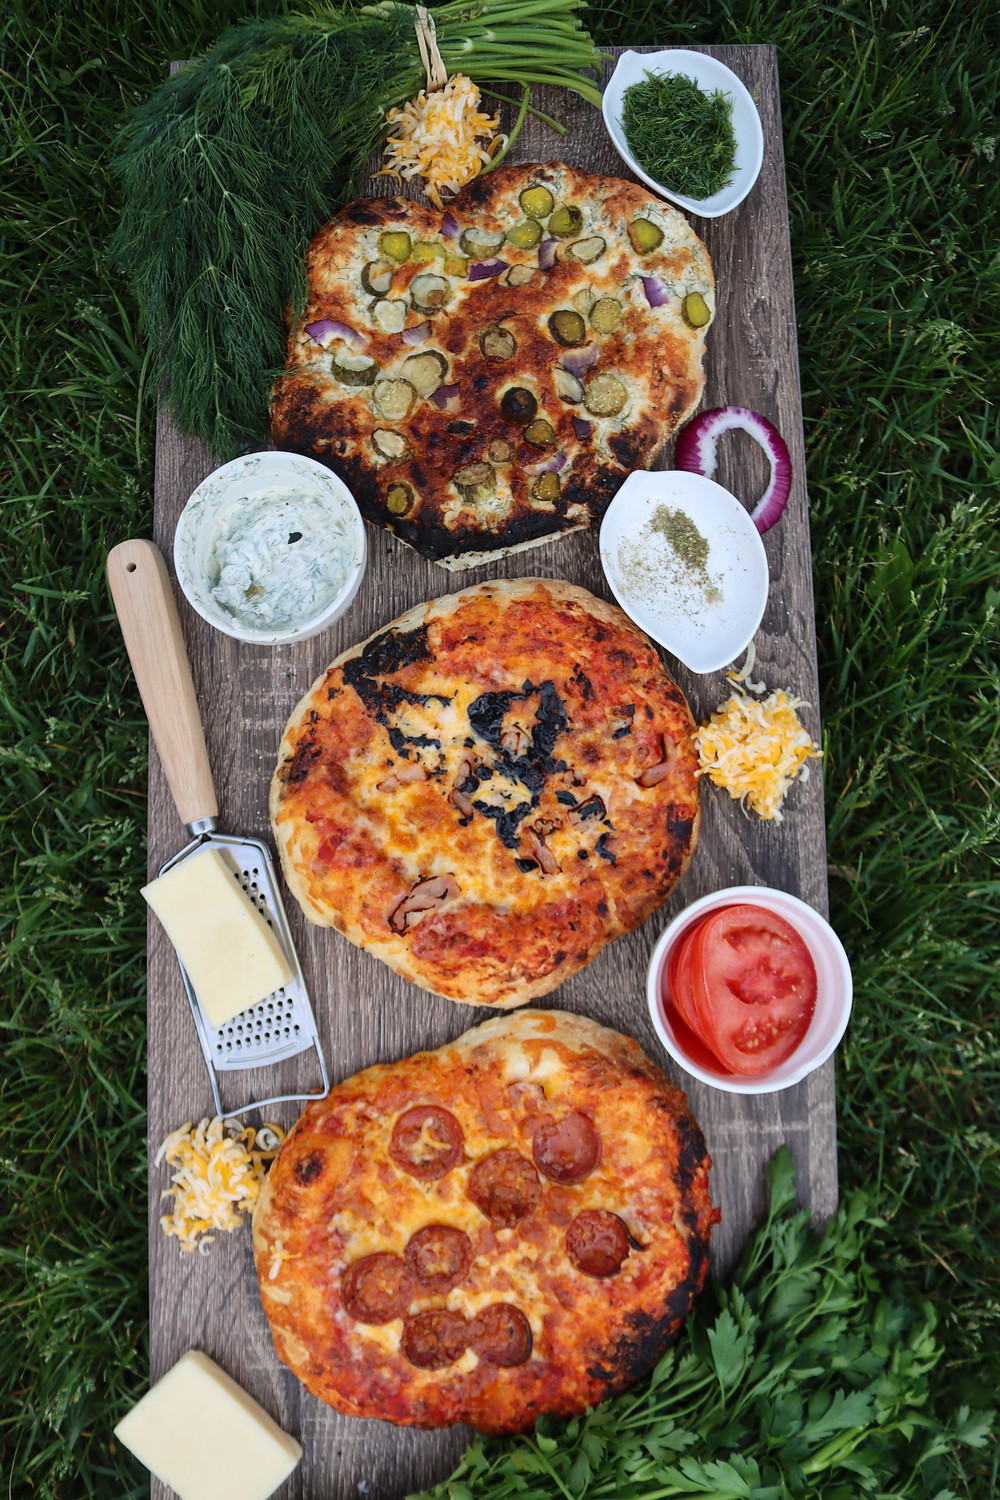 Home Pizza Oven. Outdoor Pizza Oven